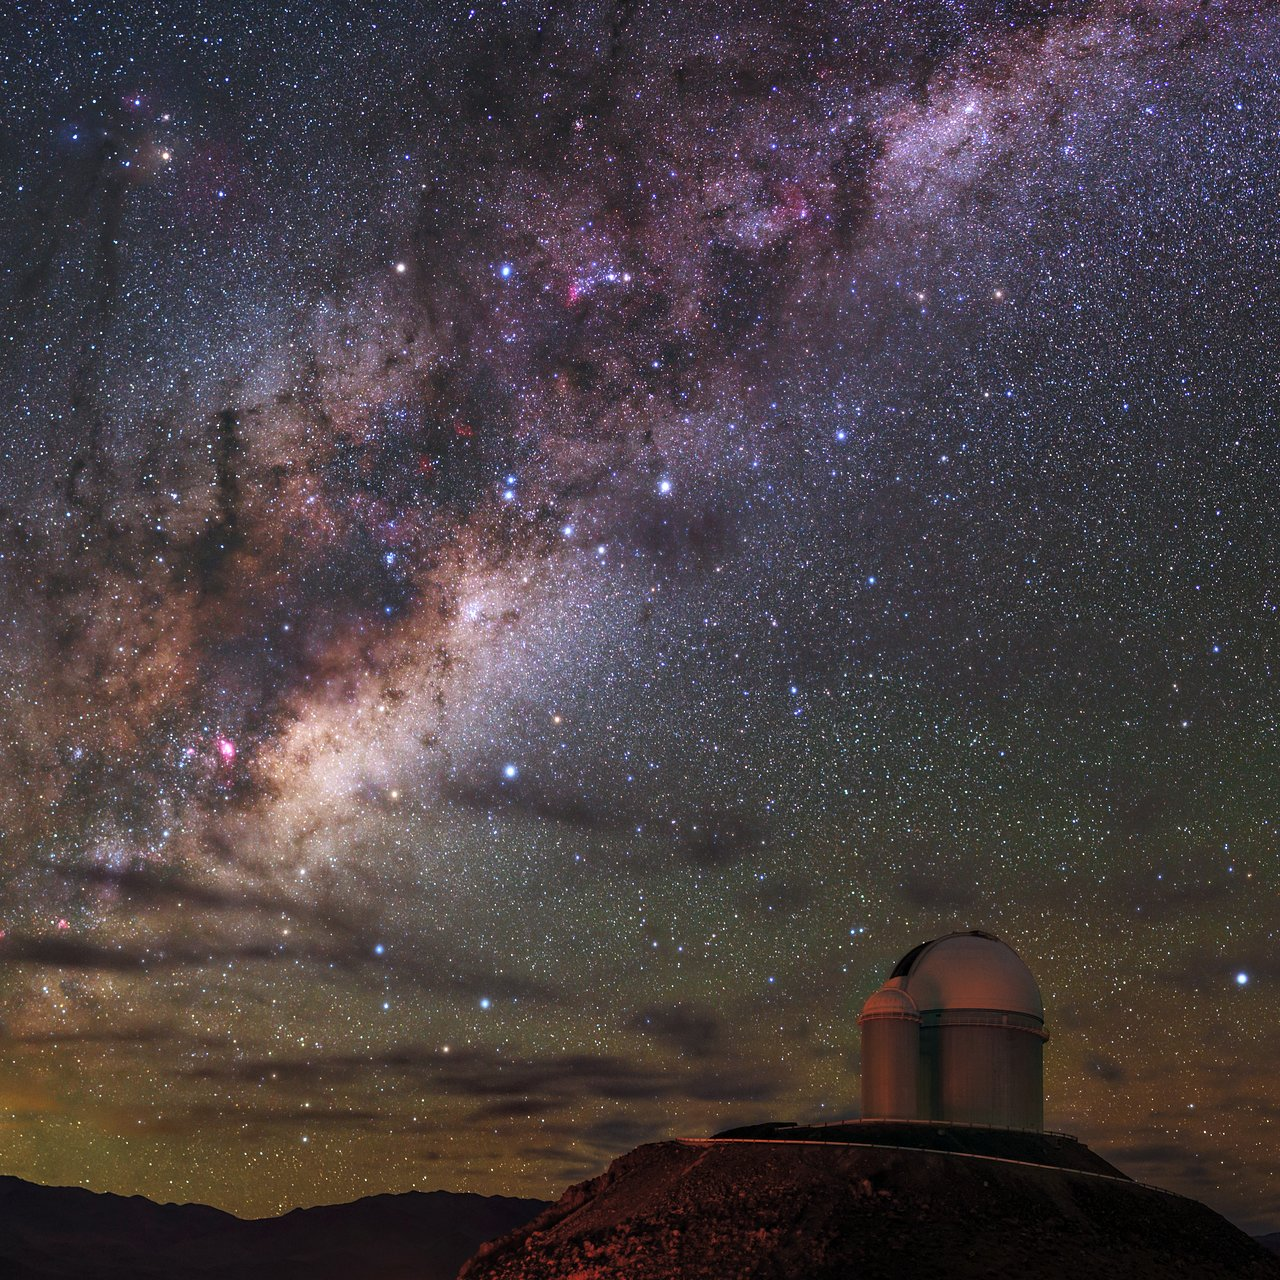 Radiance of the Milky Way over La Silla